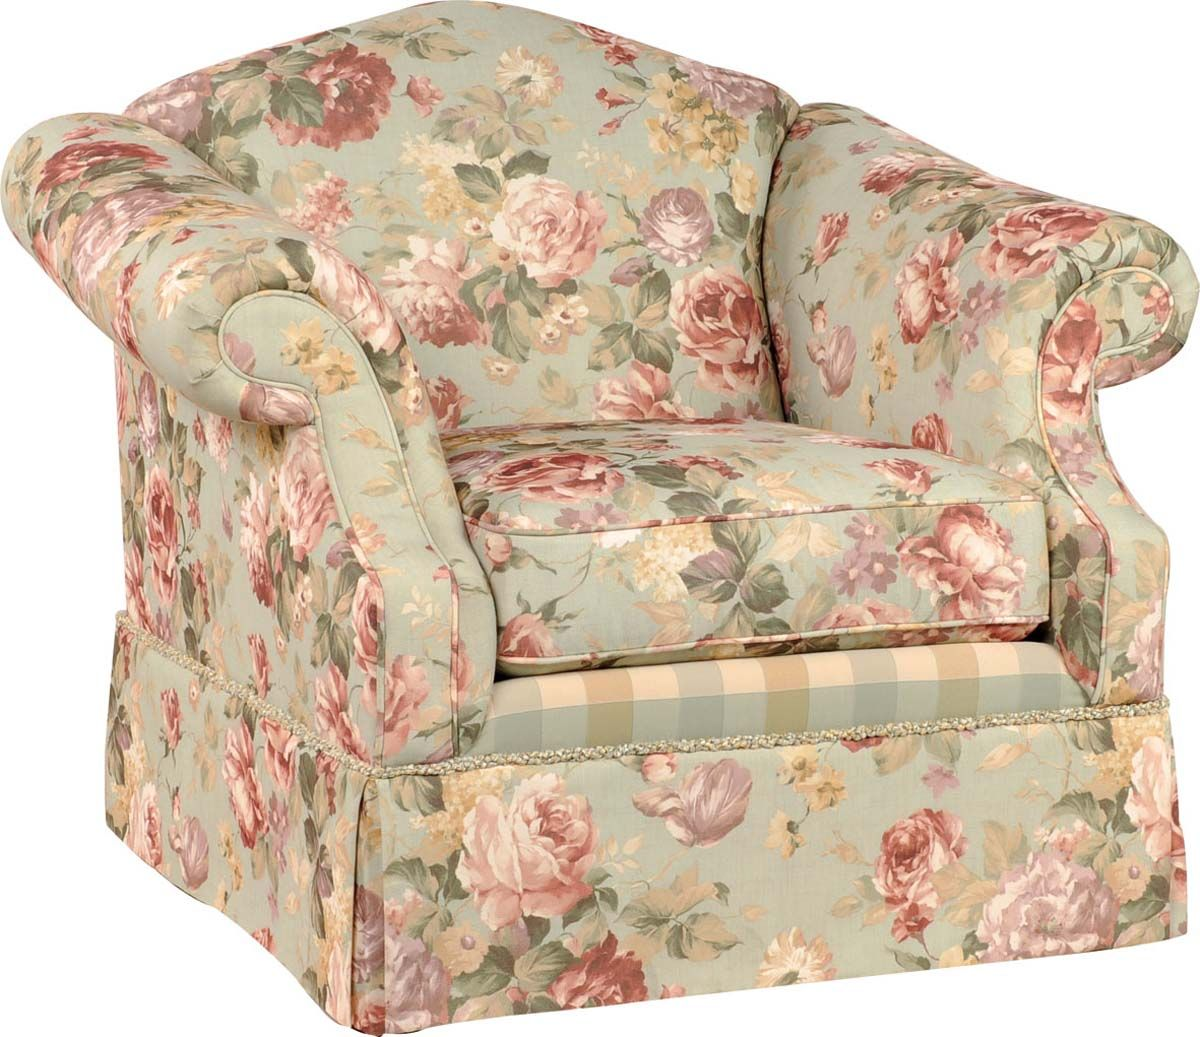 french country sofa fabric seat reinforcement beautiful rose pattern accent chair plus rolled arms